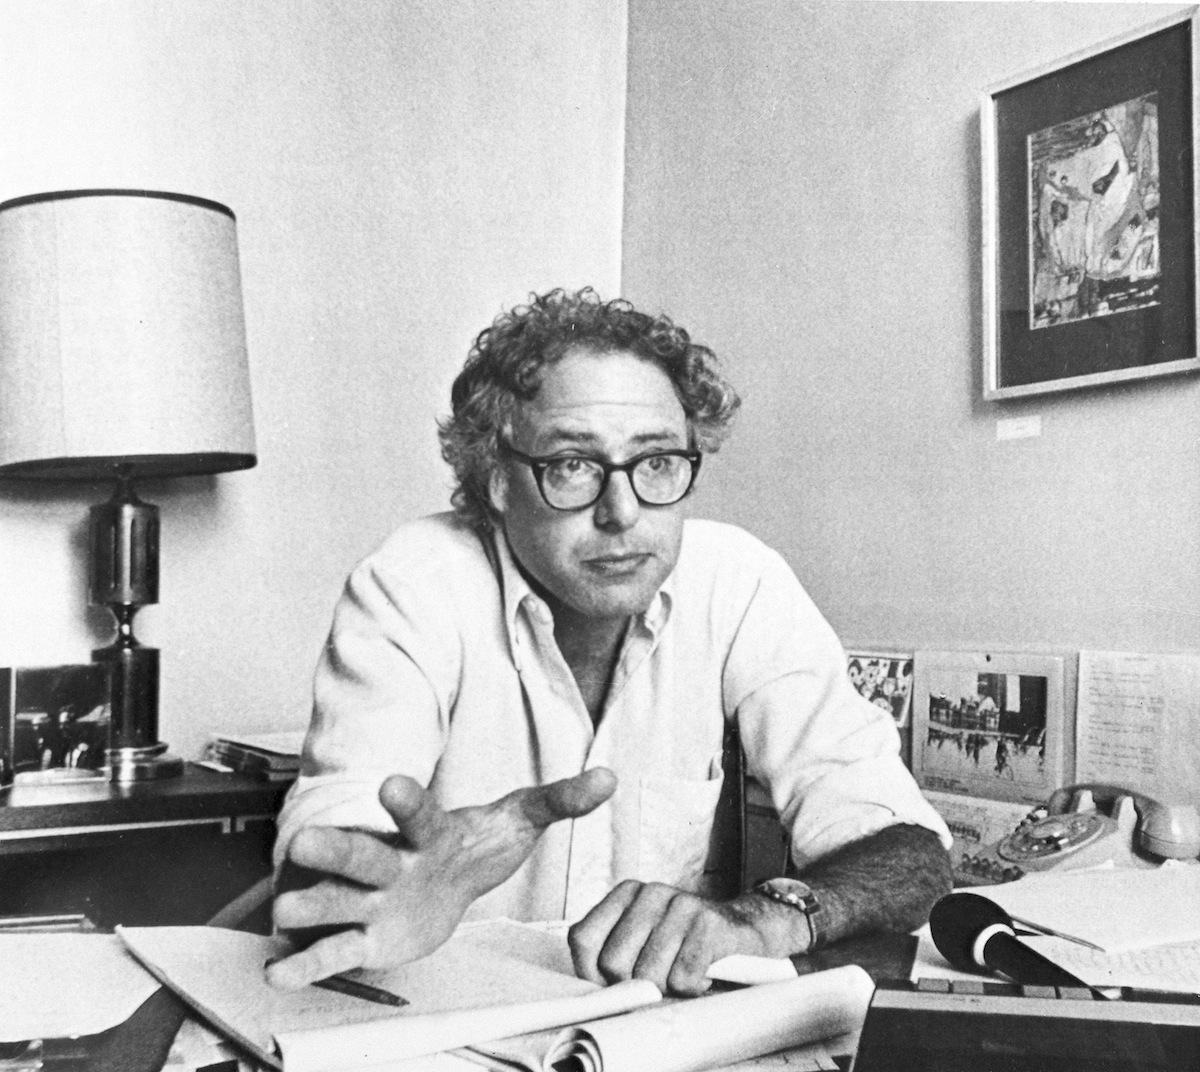 Six months after he scored a surprise victory to become mayor of Burlington, Vermont's largest city, Bernie Sanders is pictured at city hall on Sept. 15, 1981.